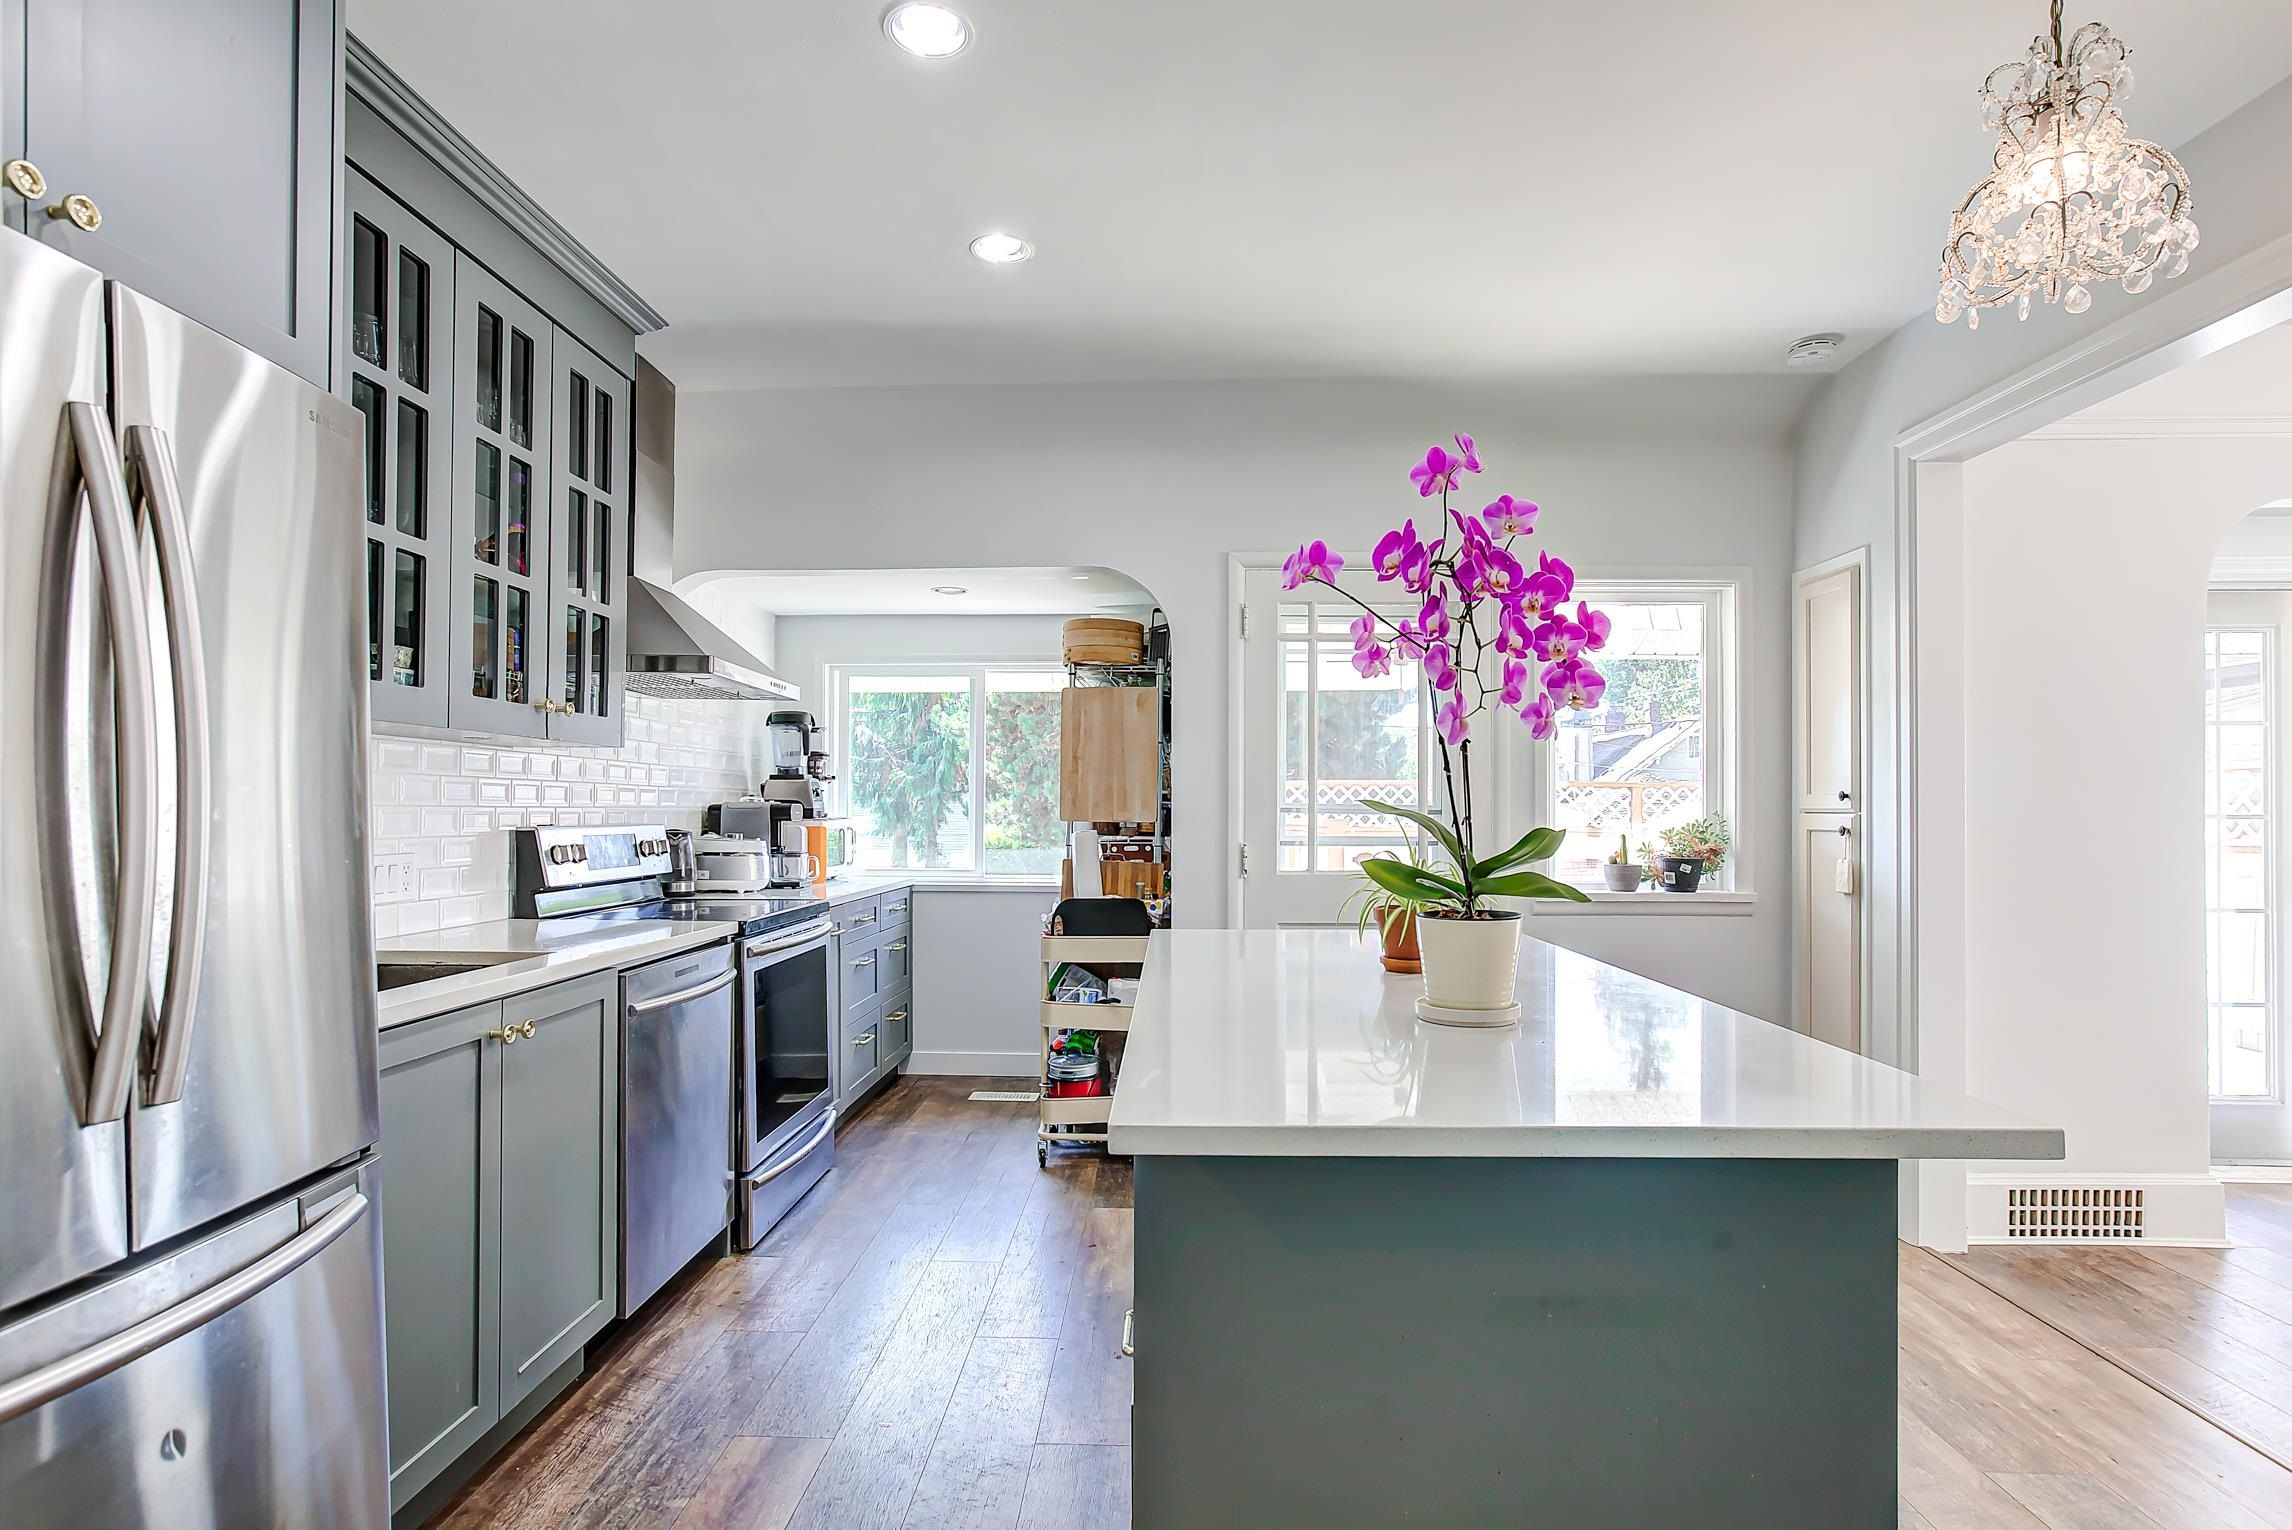 Main Photo: 2984 W 39TH Avenue in Vancouver: Kerrisdale House for sale (Vancouver West)  : MLS®# R2621823